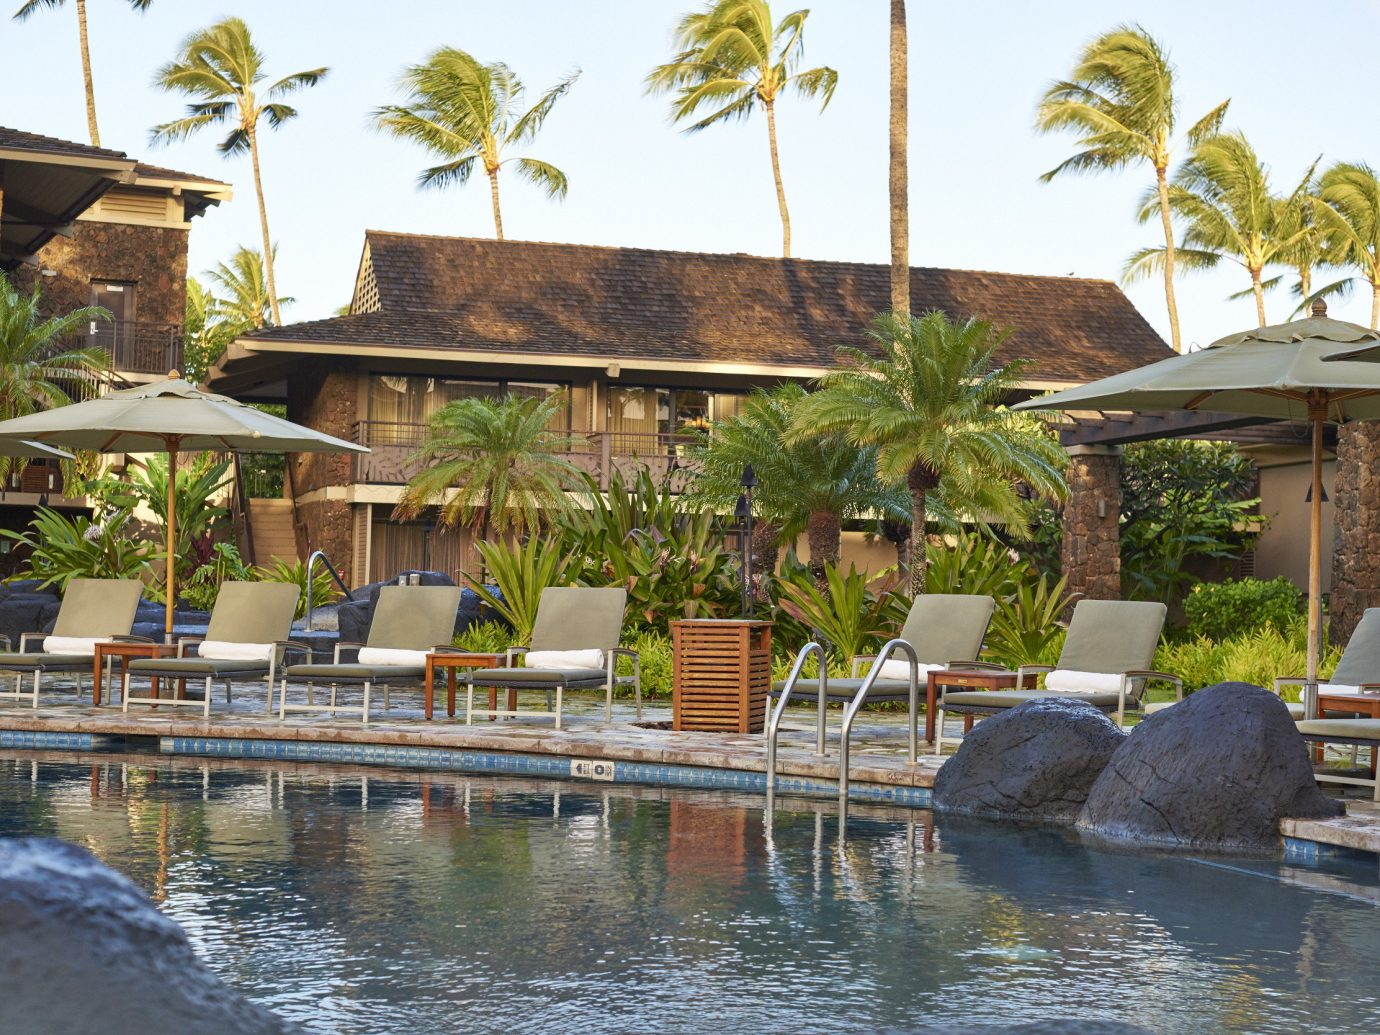 Ko'a Kea Hotel & Resort at Poipu Beach